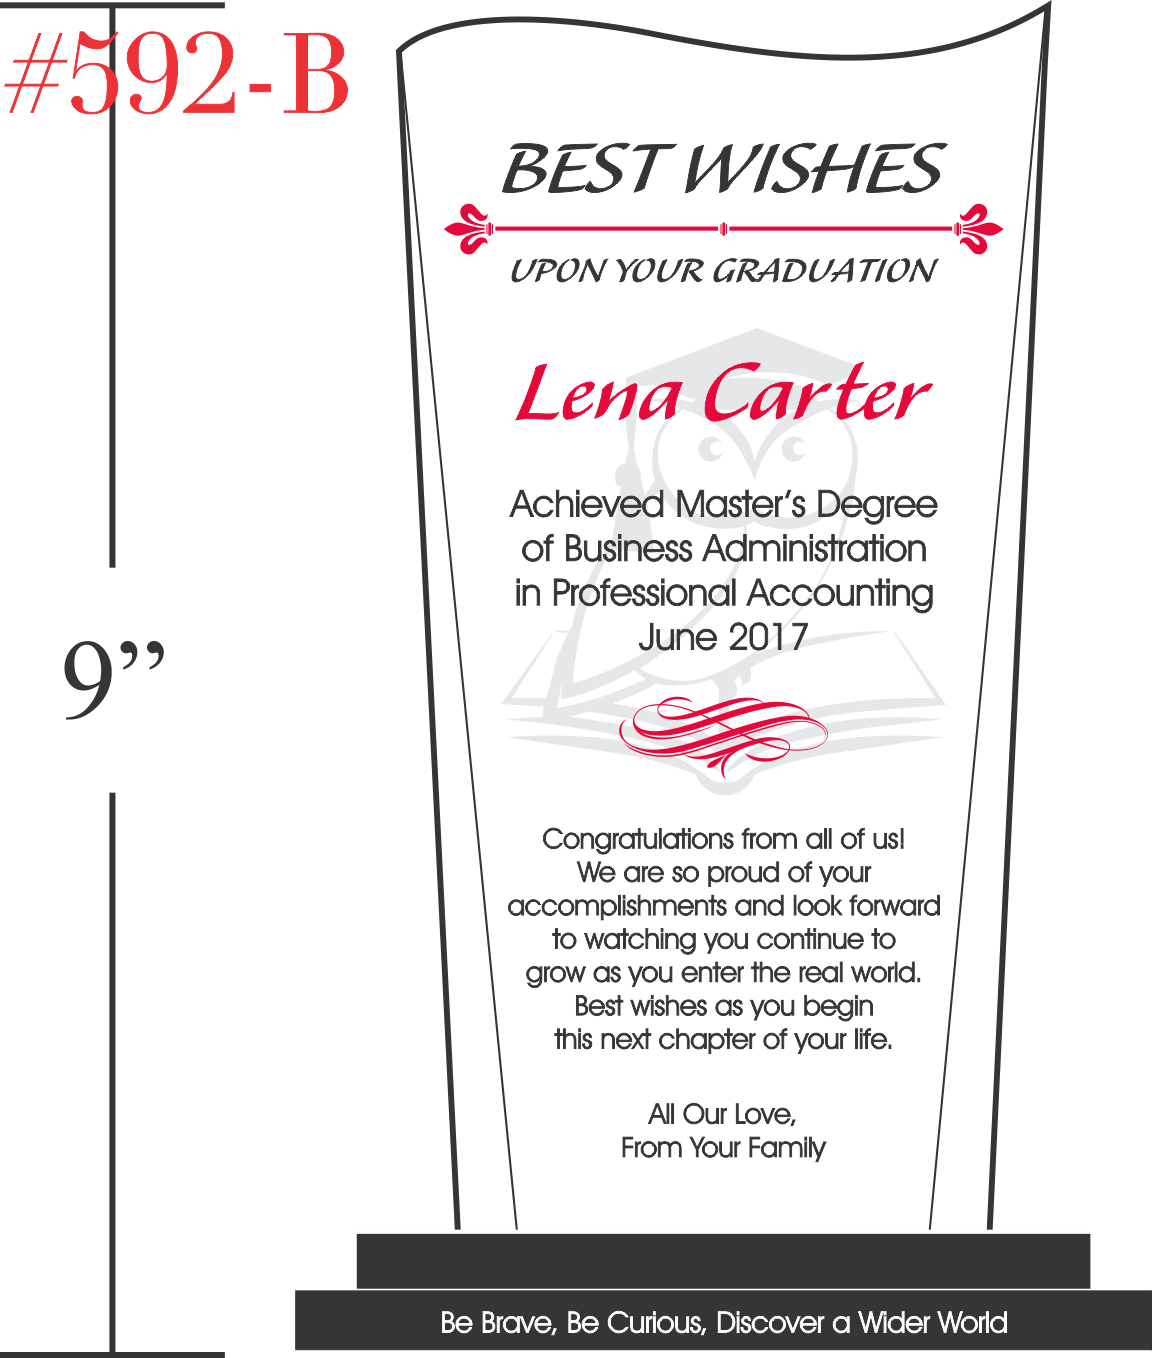 Best Wishes Graduation Plaque from Family